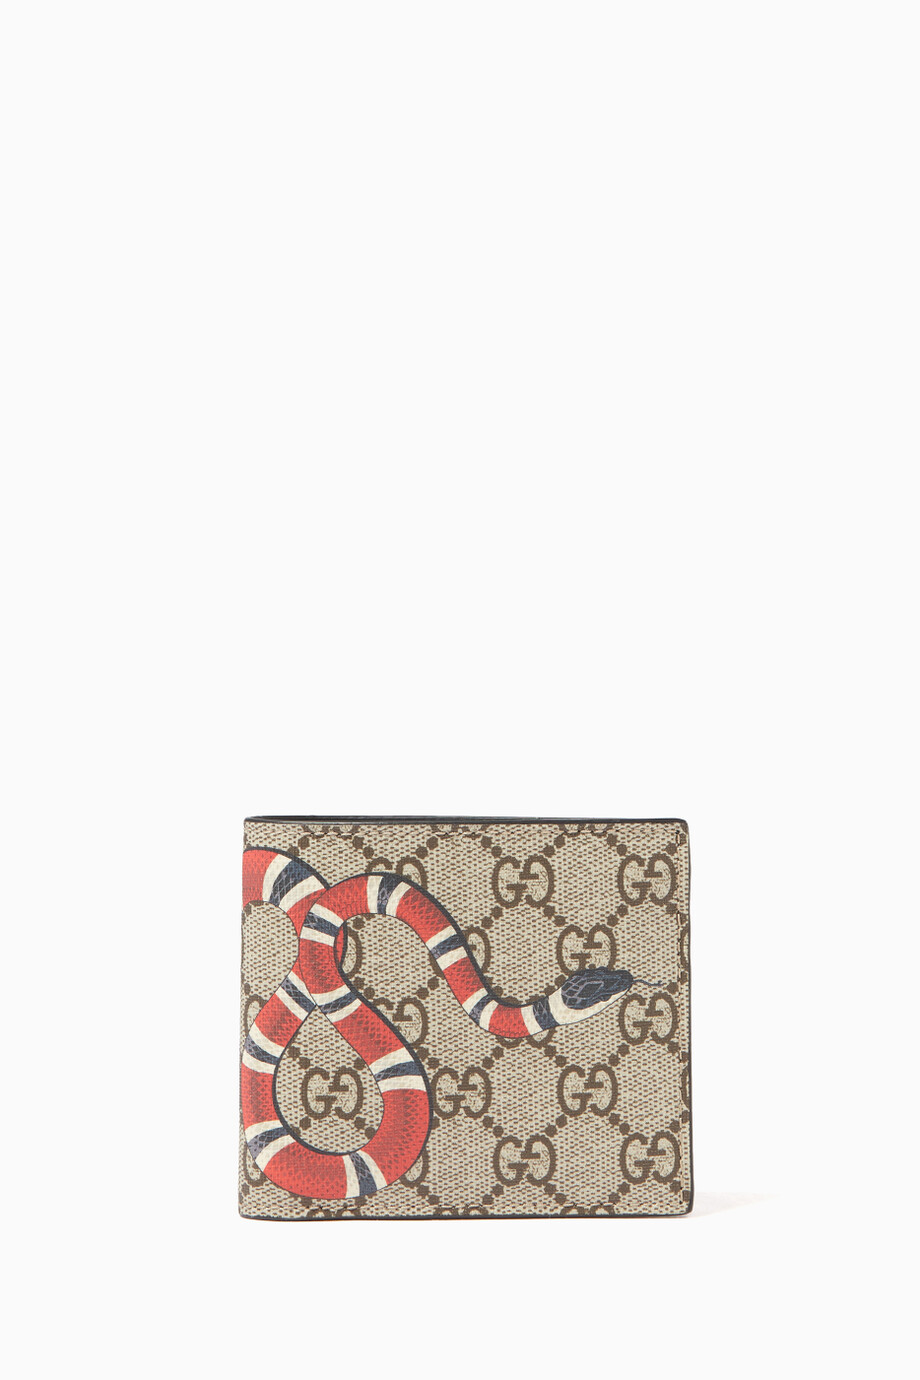 2b164bbee1d8 Shop Gucci Neutral Beige & Ebony Kingsnake Print GG Wallet for Men ...